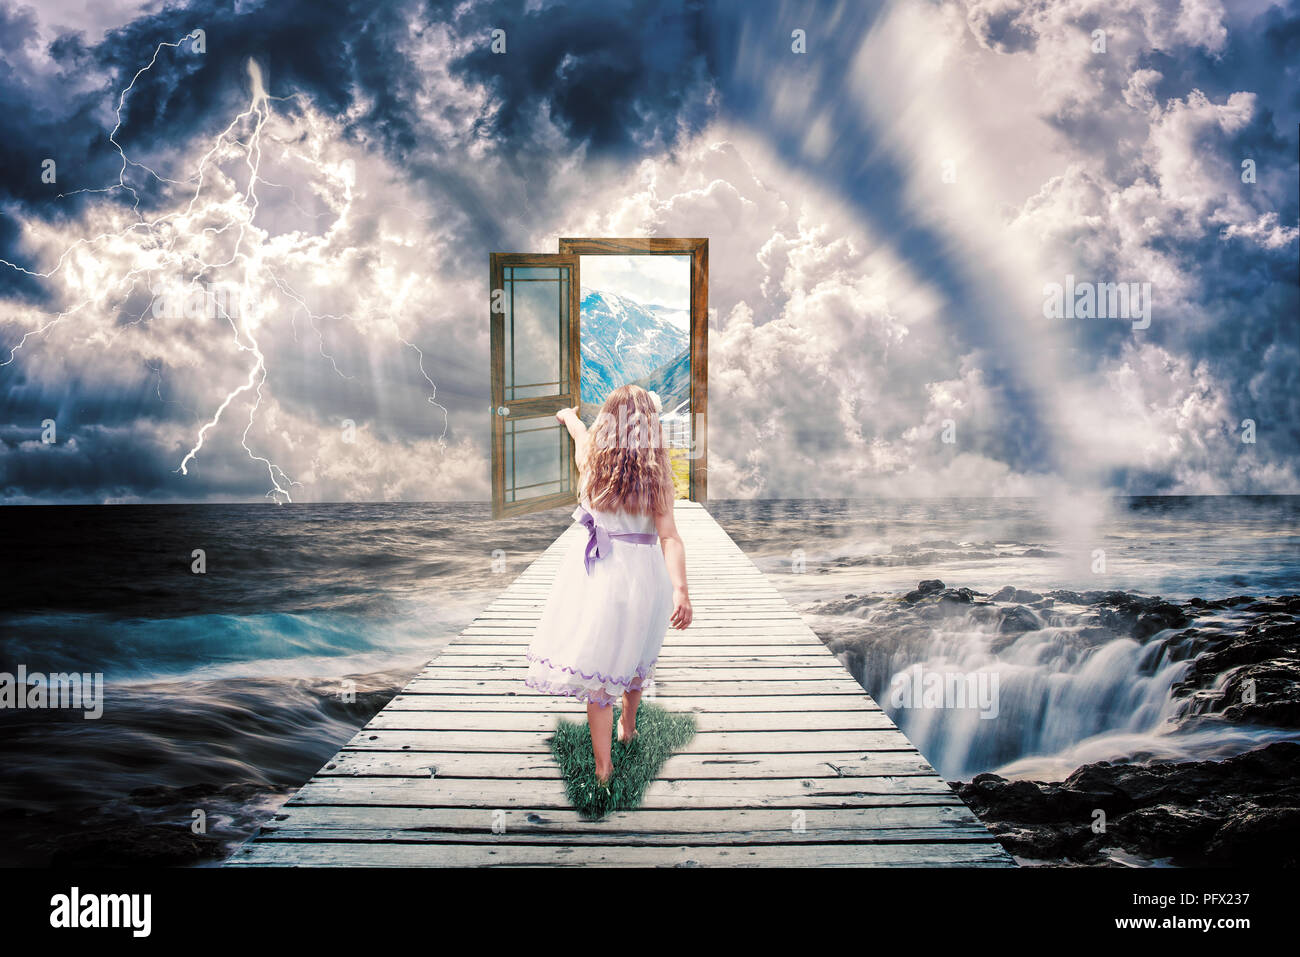 Photo manipulation of an apocalyptic scenery and a child walking towards a door containing a new world - Stock Image